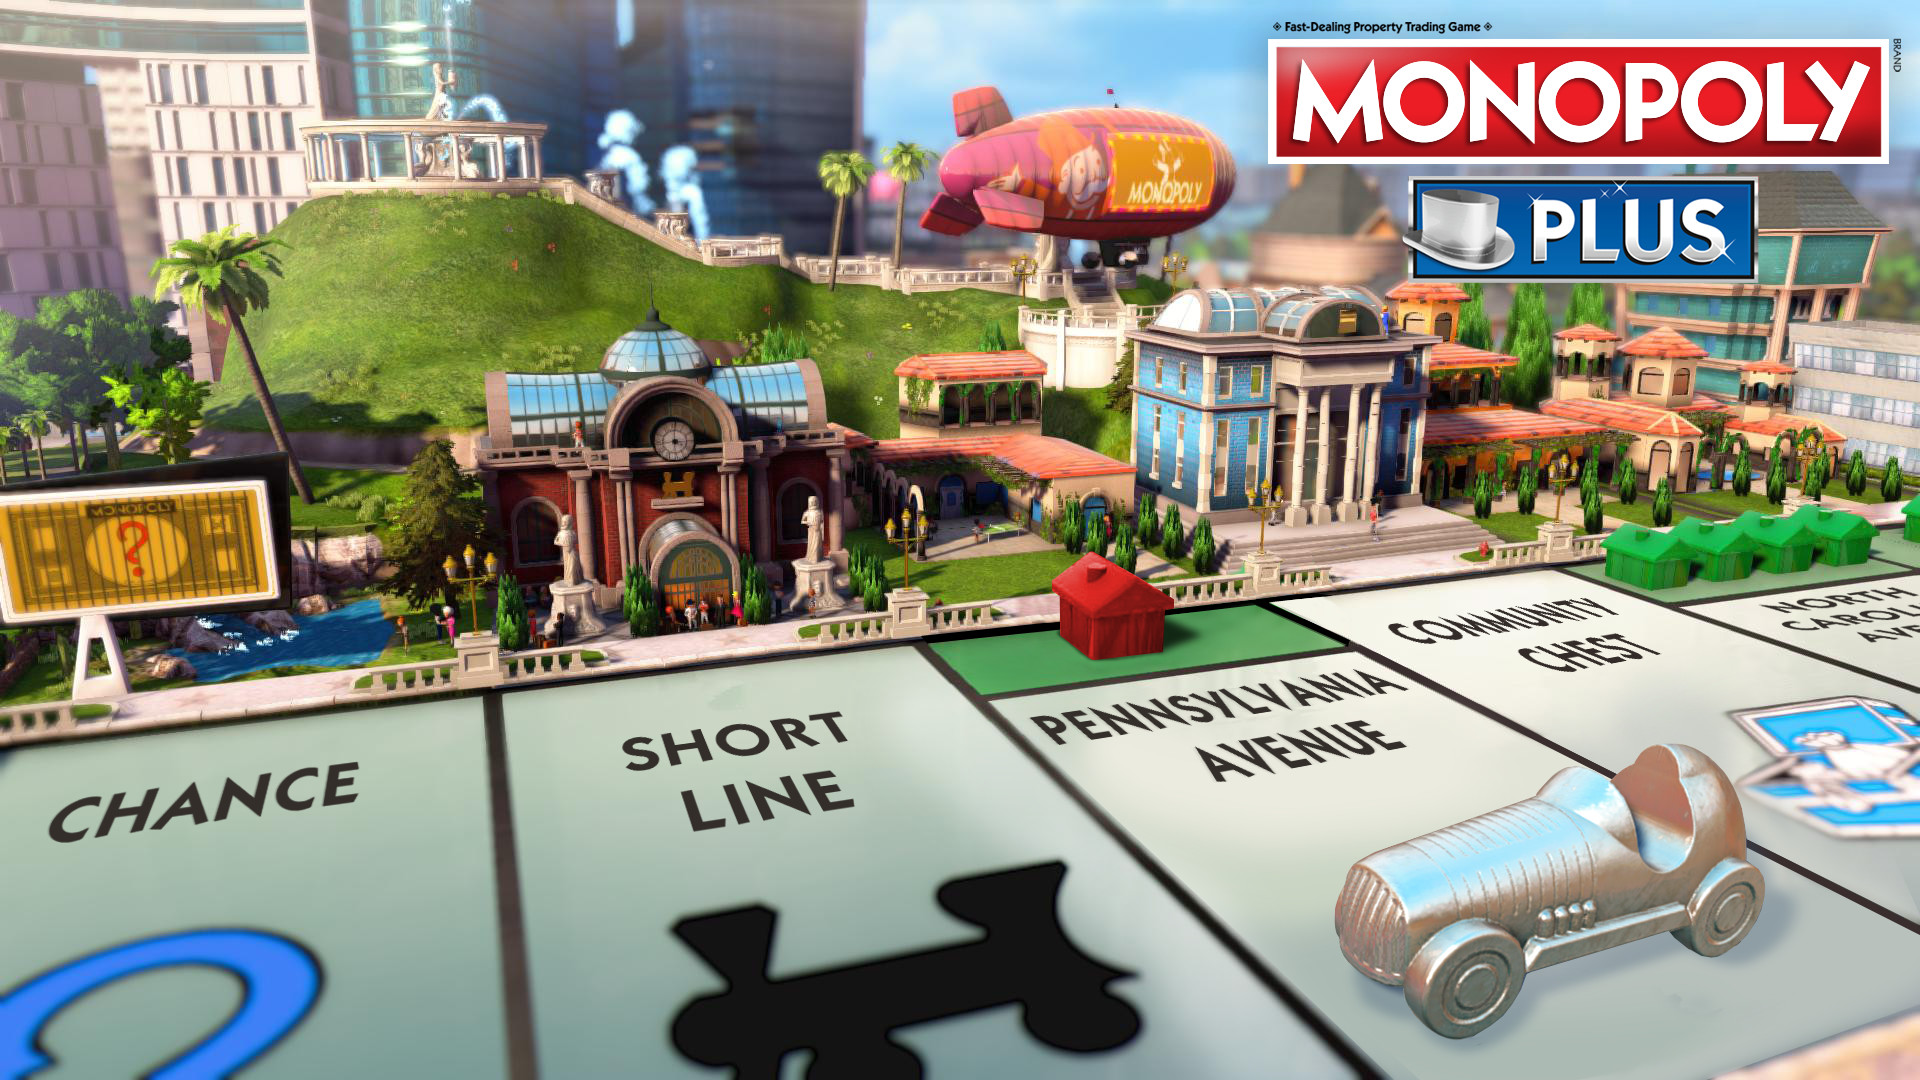 Find the best laptop for MONOPOLY PLUS